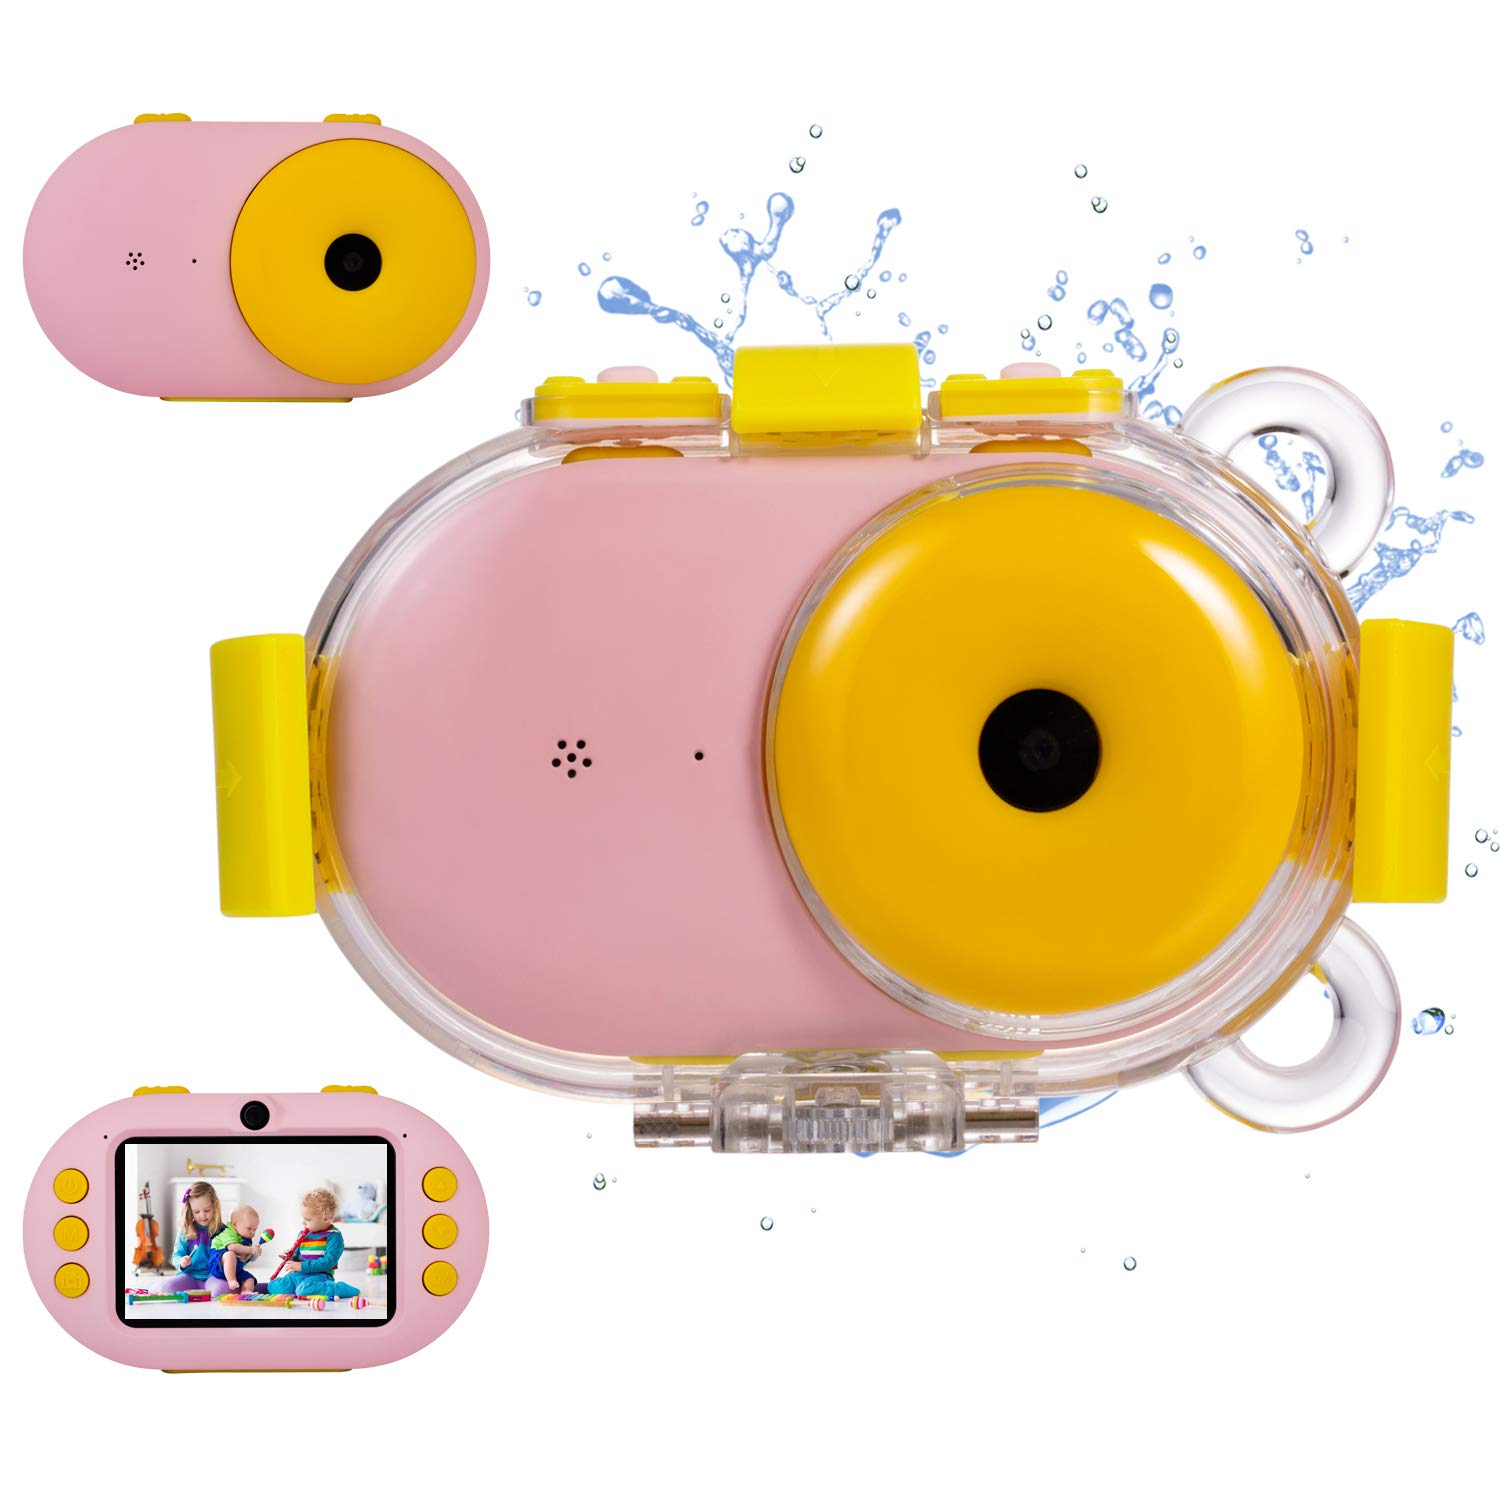 omzer Kids Camera Waterproof Gift Cameras with Shockproof Fogproof Shell for 3-10 Years Old Girls Boys, Underwater Digital Cameras for Kids Beach Snorkeling, Pink(16GB Memory Card Included)